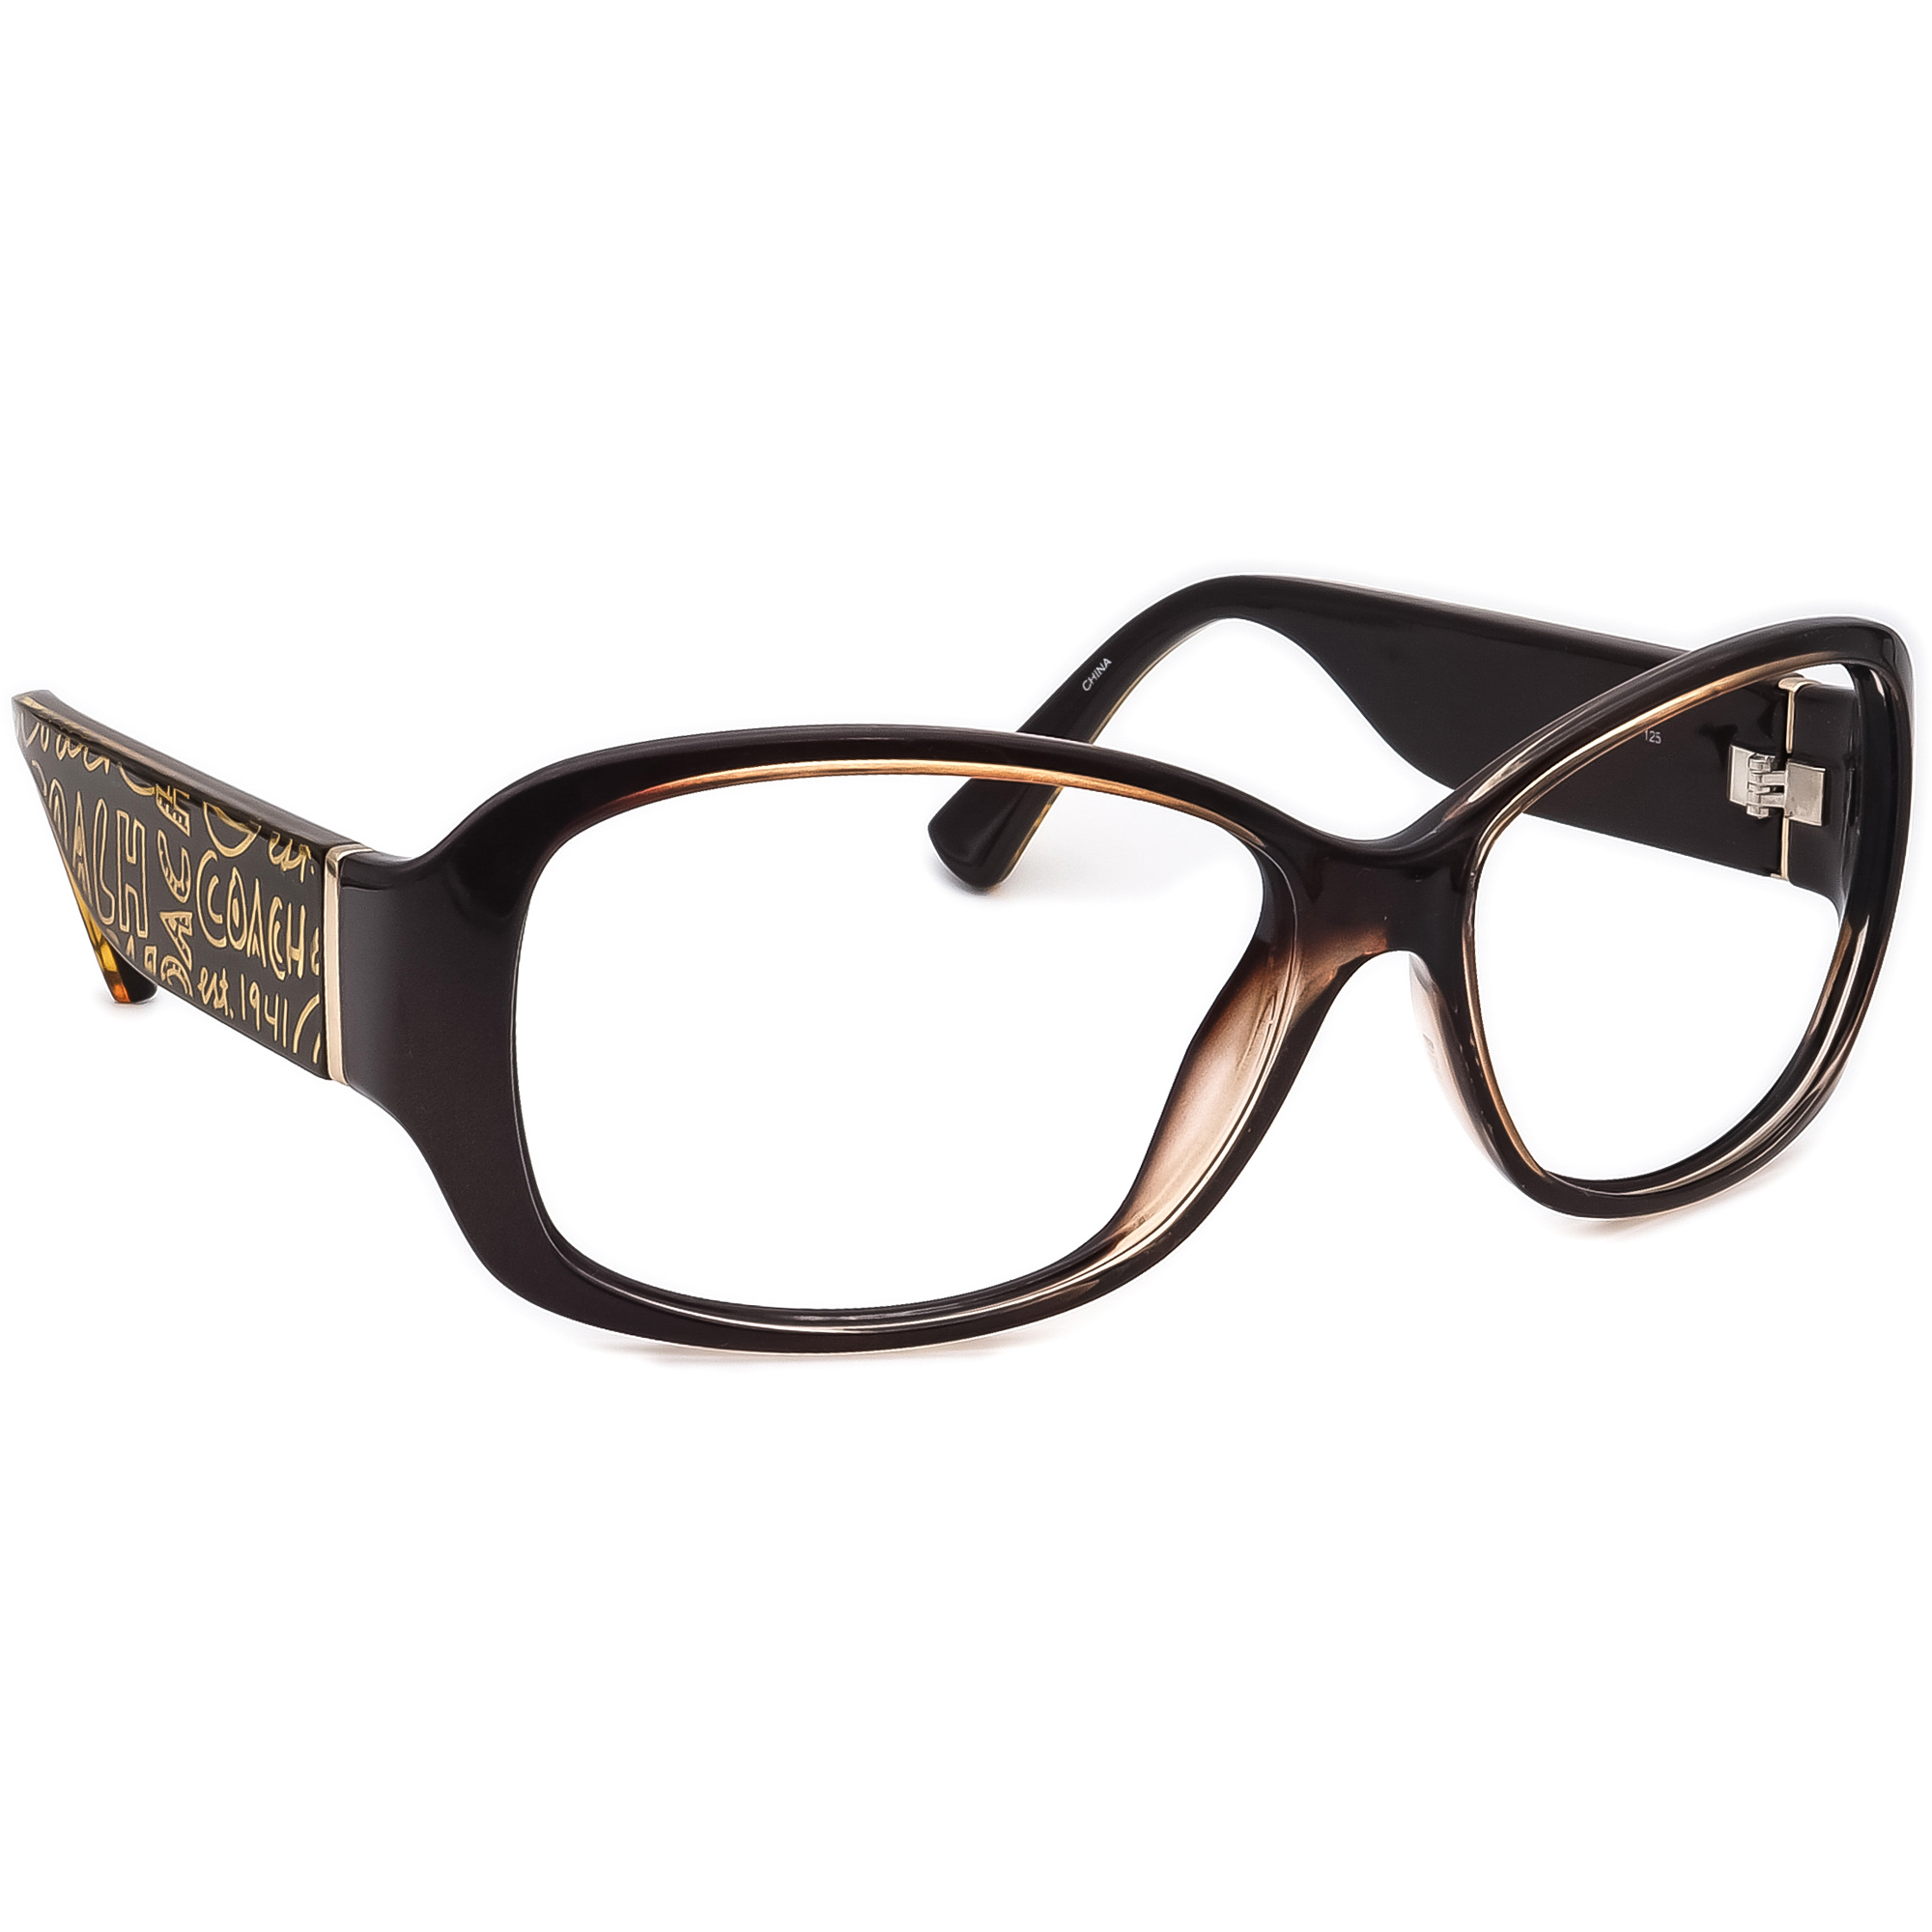 Coach S3005  Sunglasses Frame Only